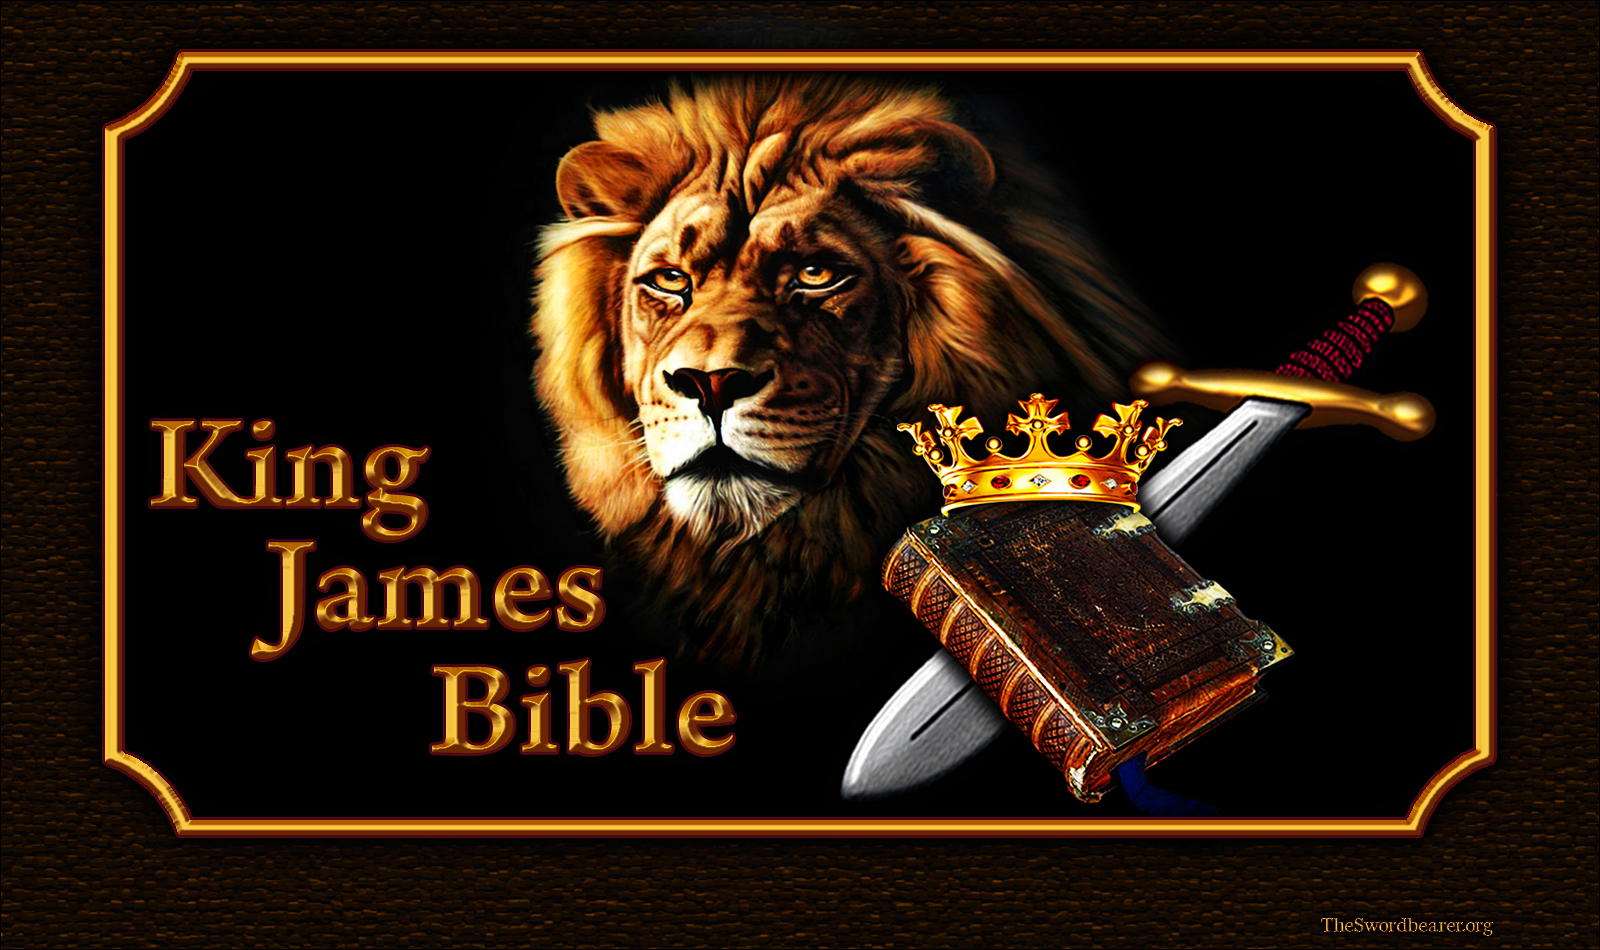 King James Bible wallpapers 1600x950